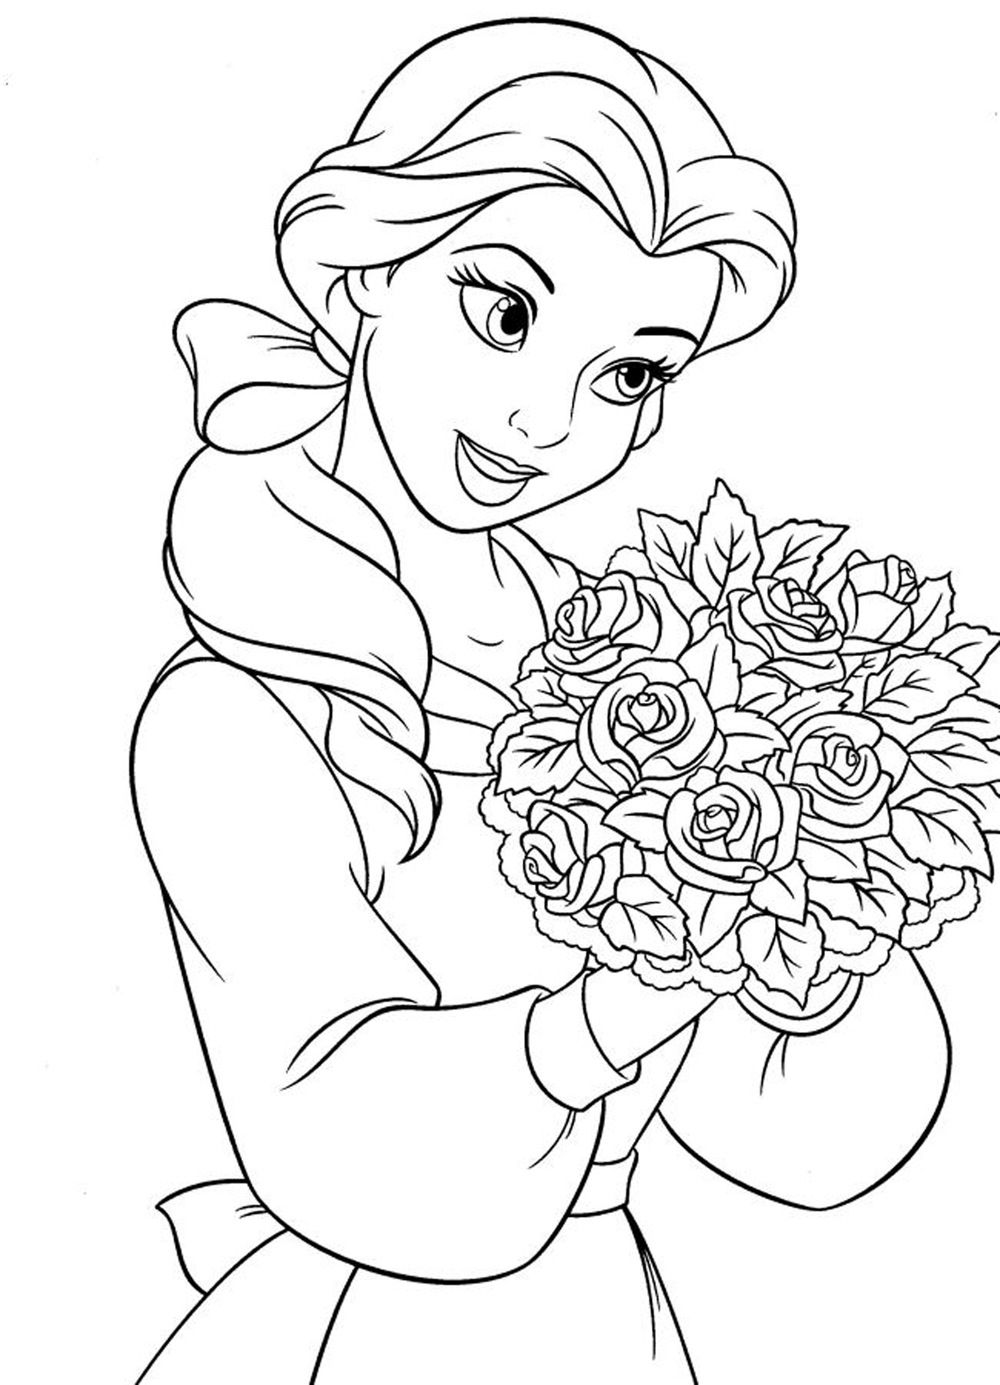 explore coloring pages for girls kids coloring and more - Coloring Books For Girls